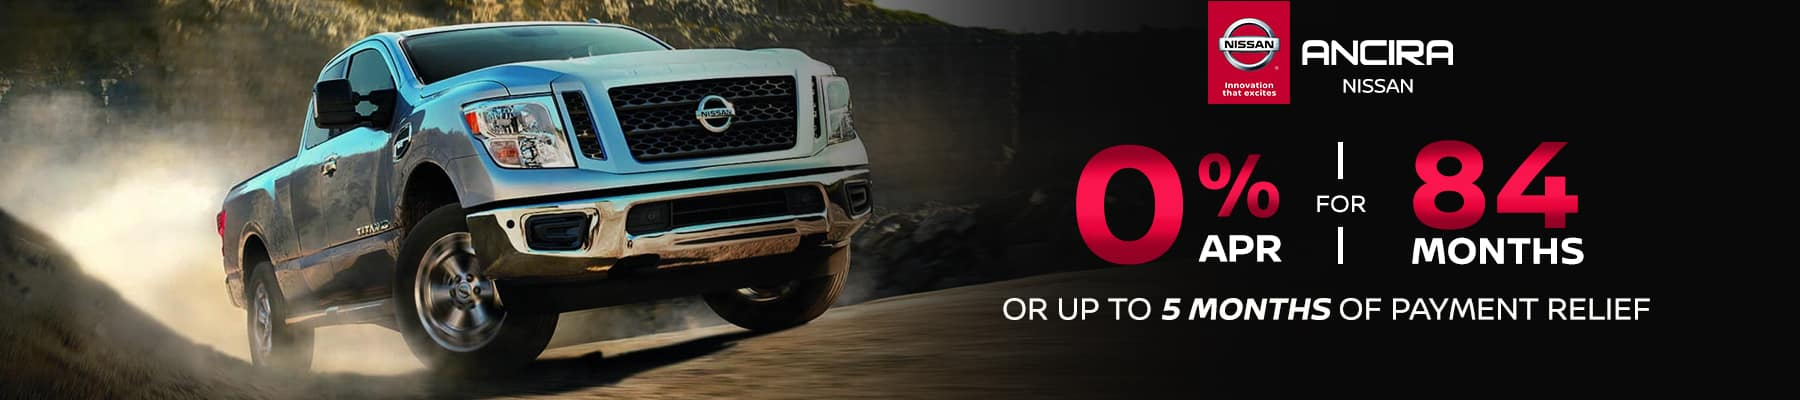 Zero Percent APR for 84 months - Ancira Nissan